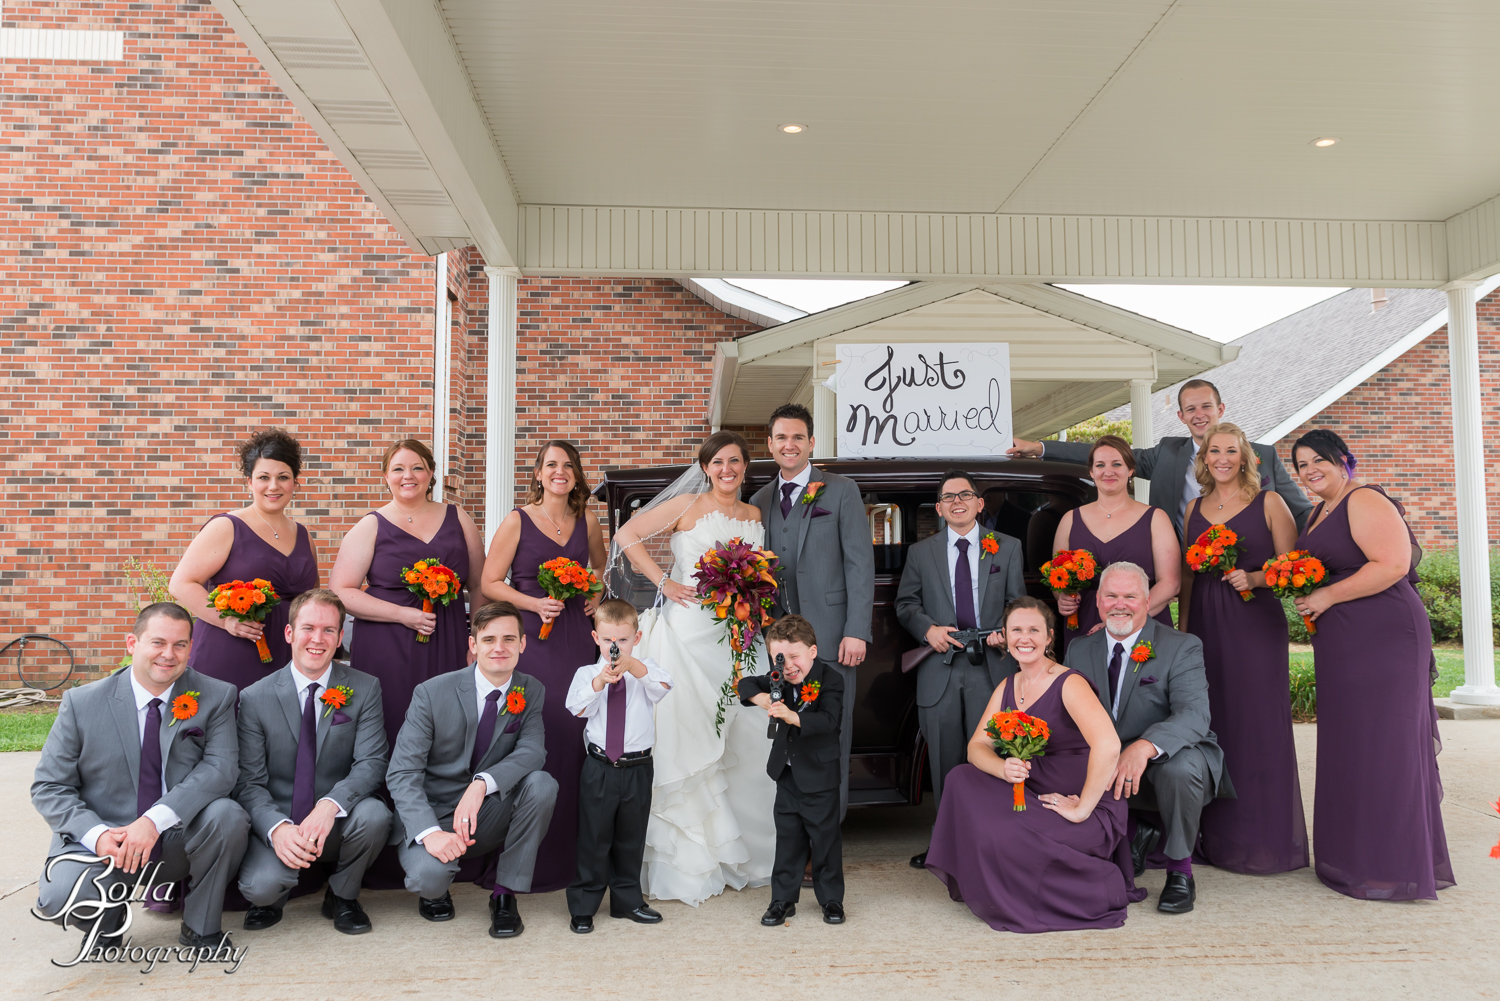 Bolla_Photography_St_Louis_wedding_photographer-0327.jpg